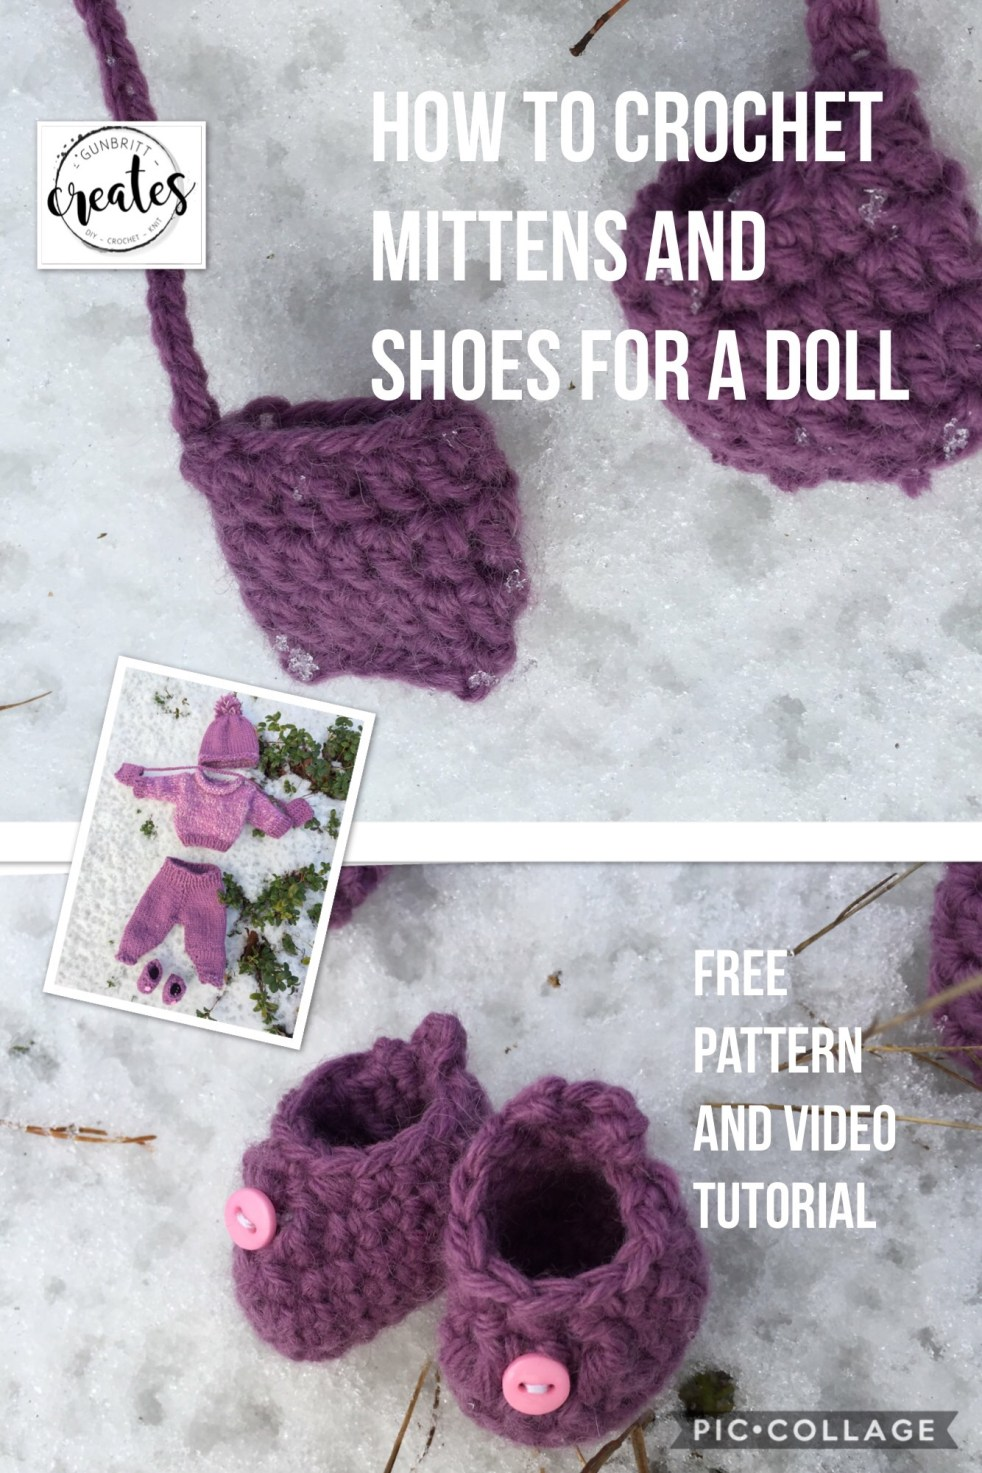 How to crochet Mittens and Shoes for a Doll – gbcreates